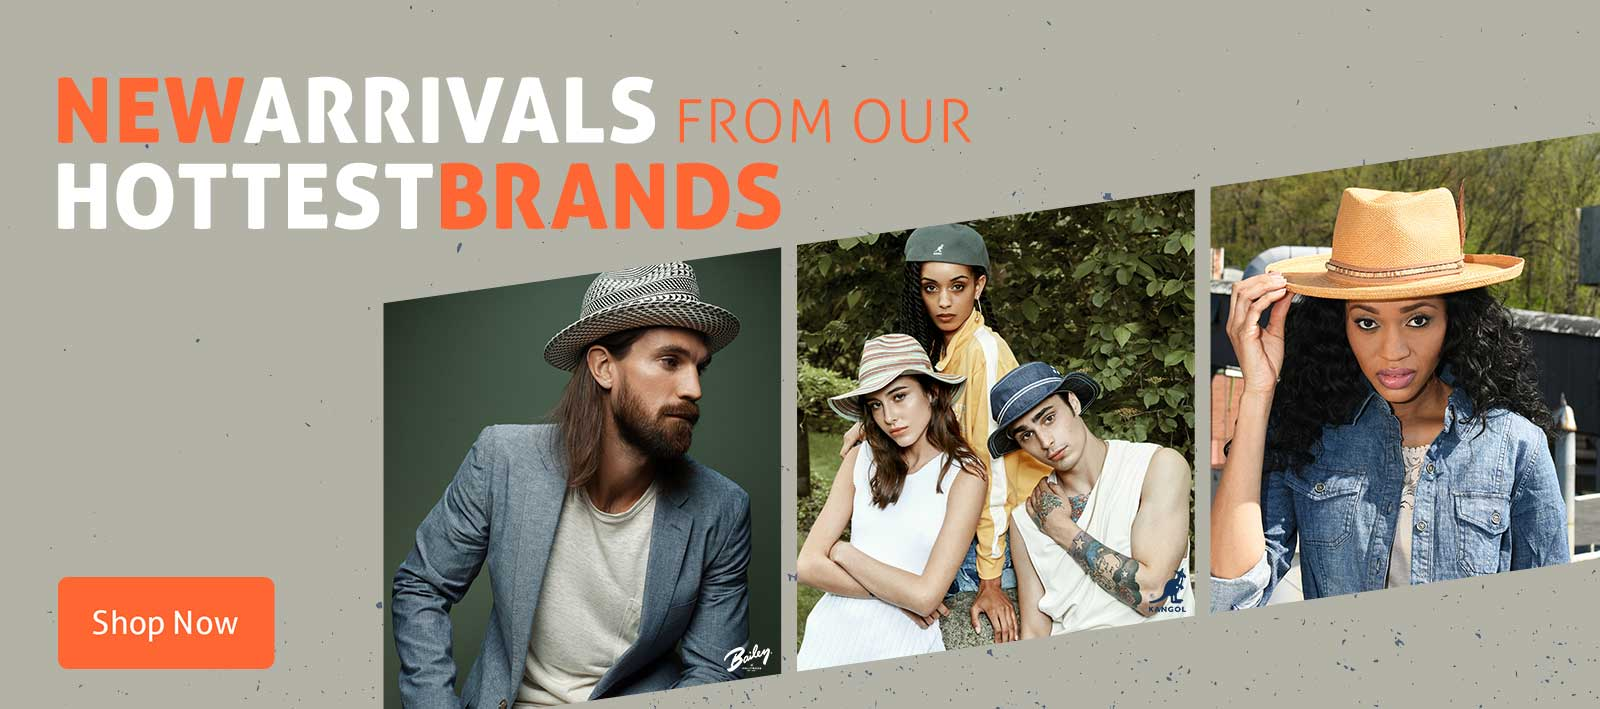 New Arrivals from our Hottest Brands